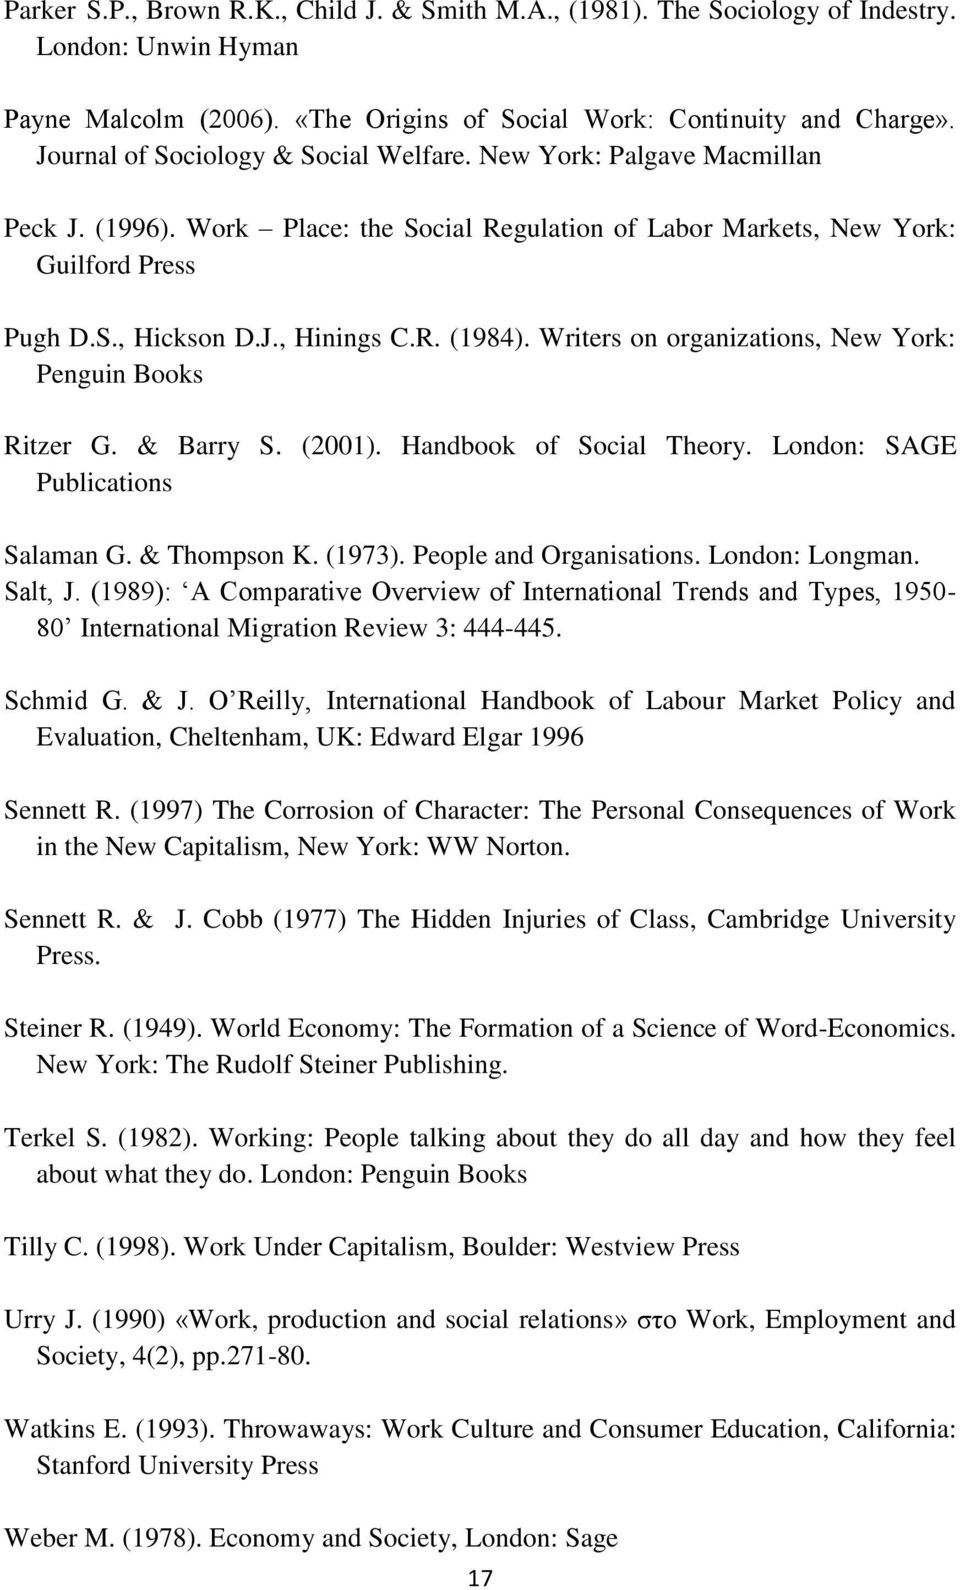 Writers on organizations, New York: Penguin Books Ritzer G. & Barry S. (2001). Handbook of Social Theory. London: SAGE Publications Salaman G. & Thompson K. (1973). People and Organisations.